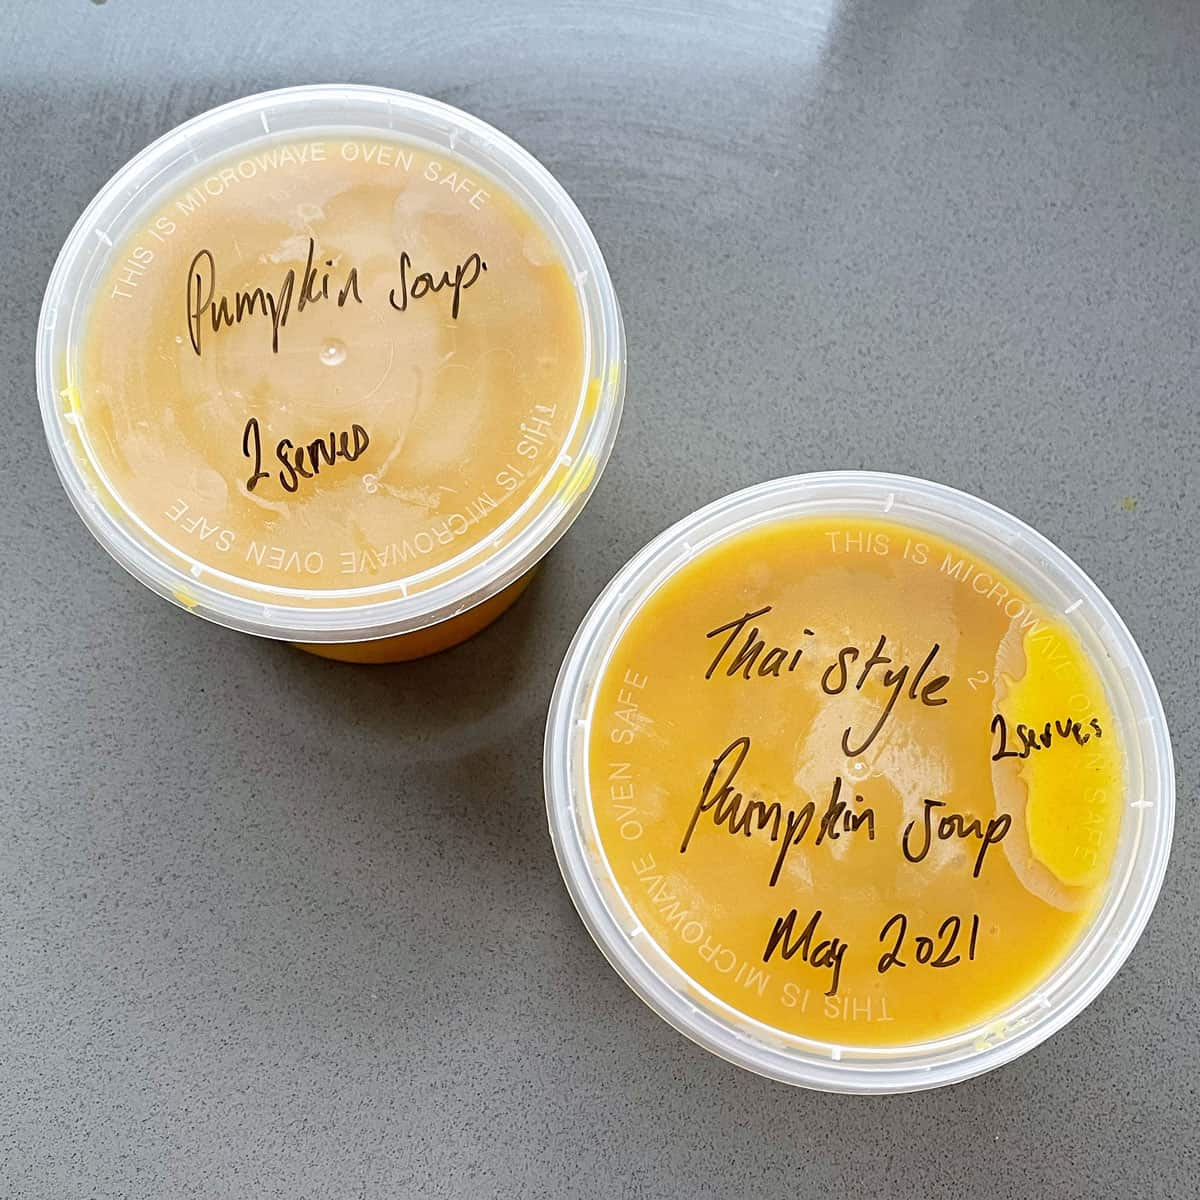 Two plastic containers of pumpkin soup sitting on a grey bench.